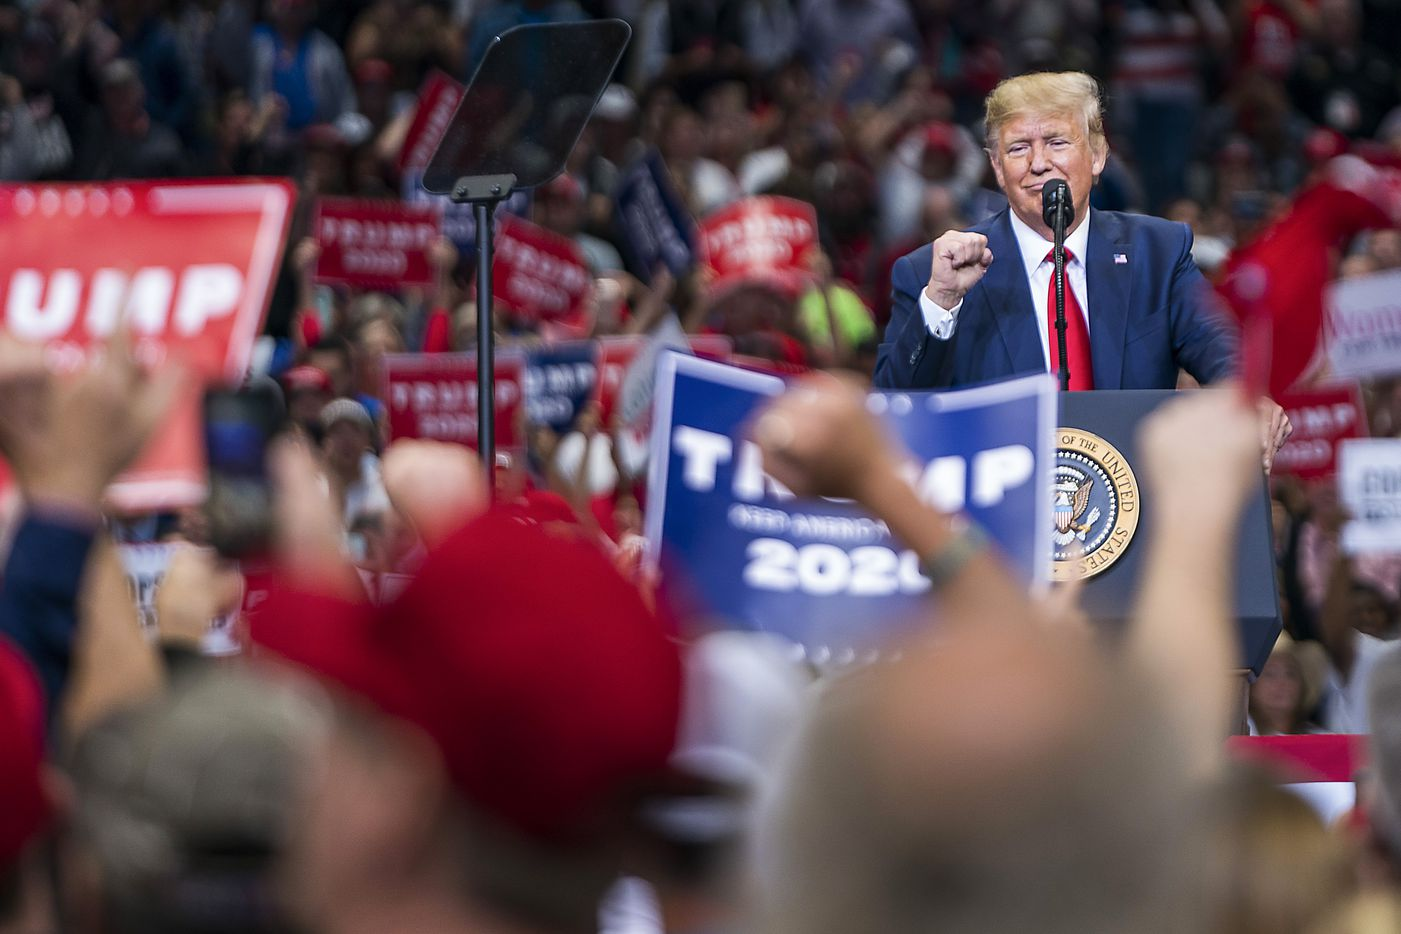 President Donald Trump speaks during a campaign rally at the American Airlines Center on Thursday, Oct. 17, 2019, in Dallas.